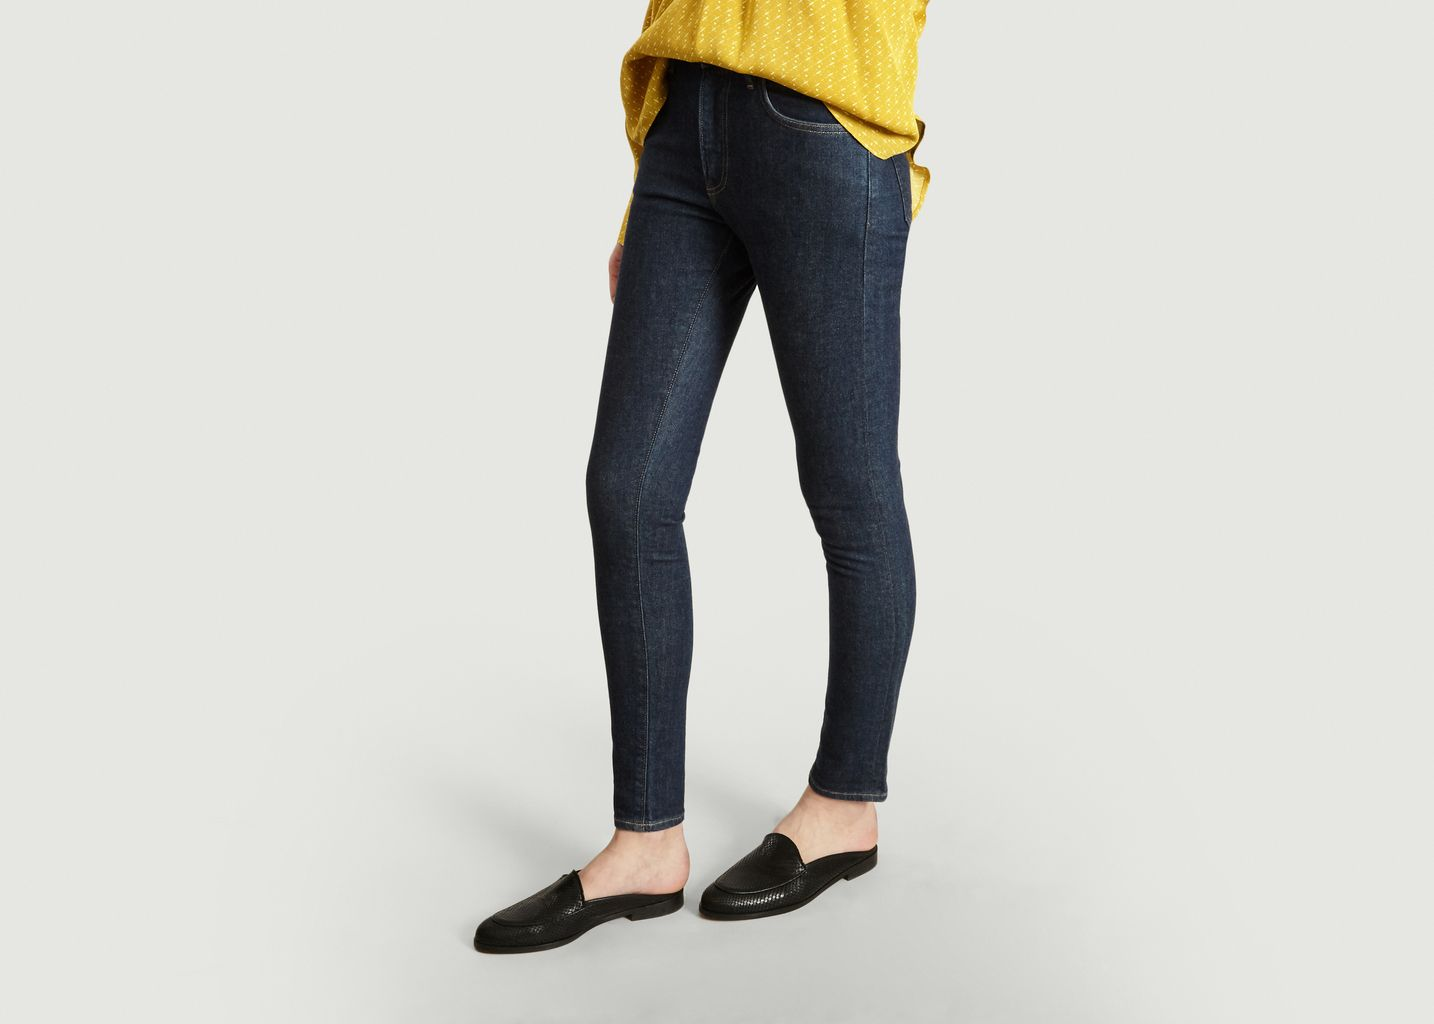 Jean 721 Skinny - Levi's Made and Crafted